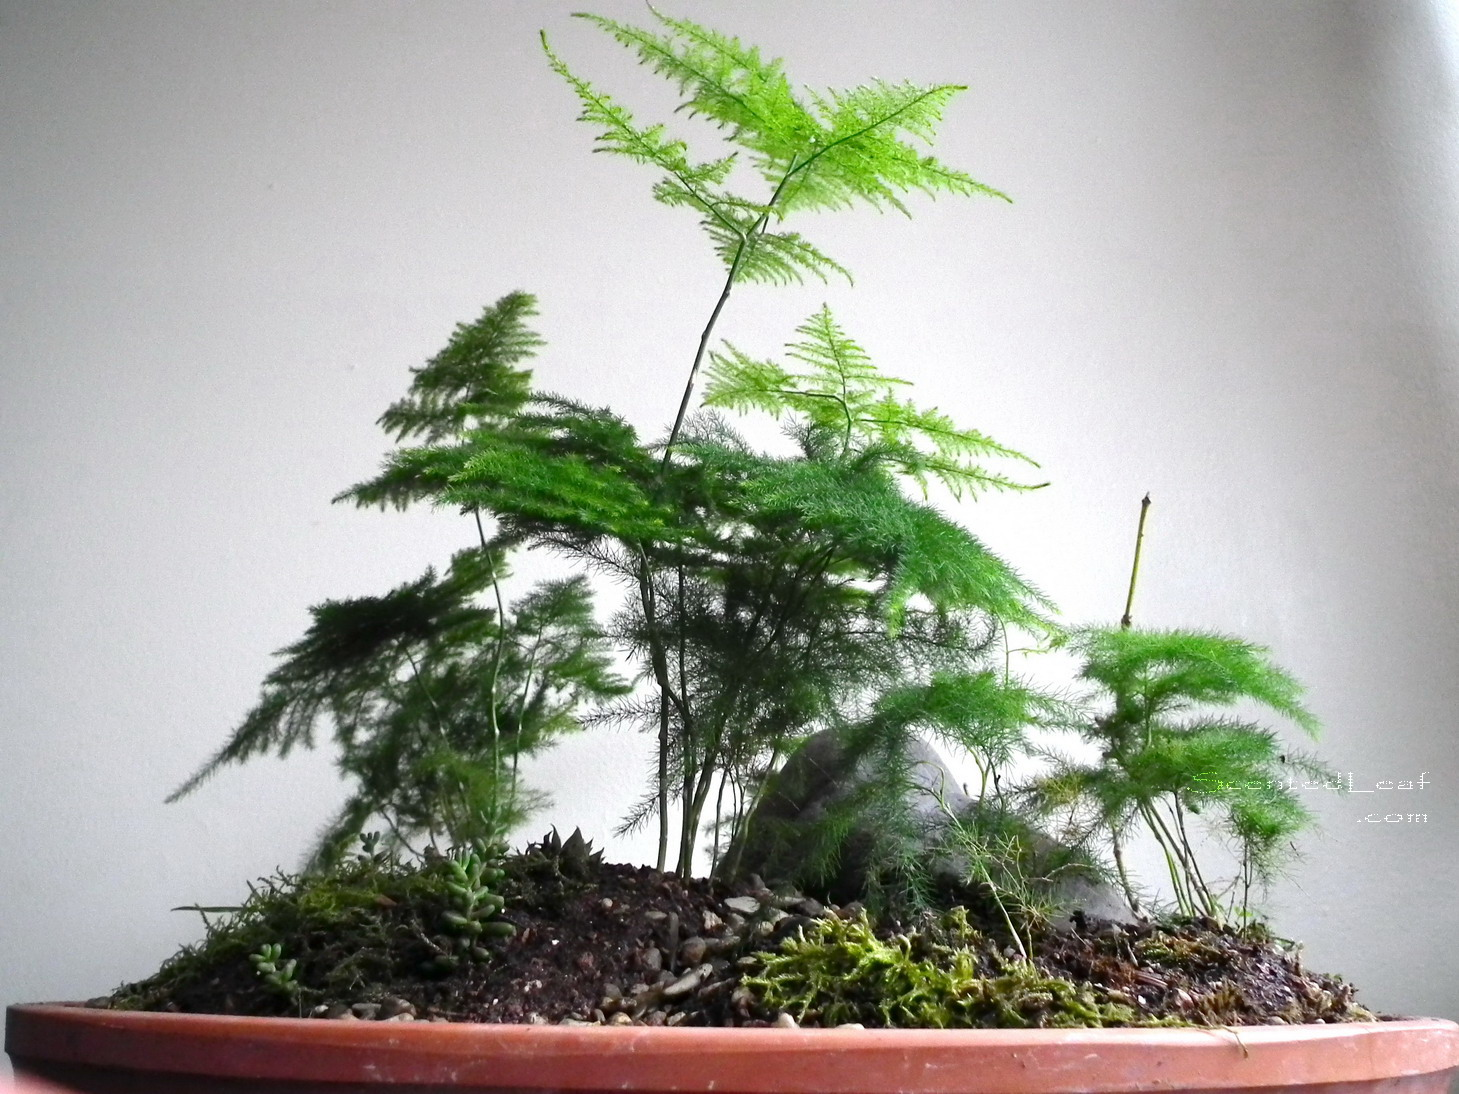 Scented Leaf Saikei With Asparagus Fern